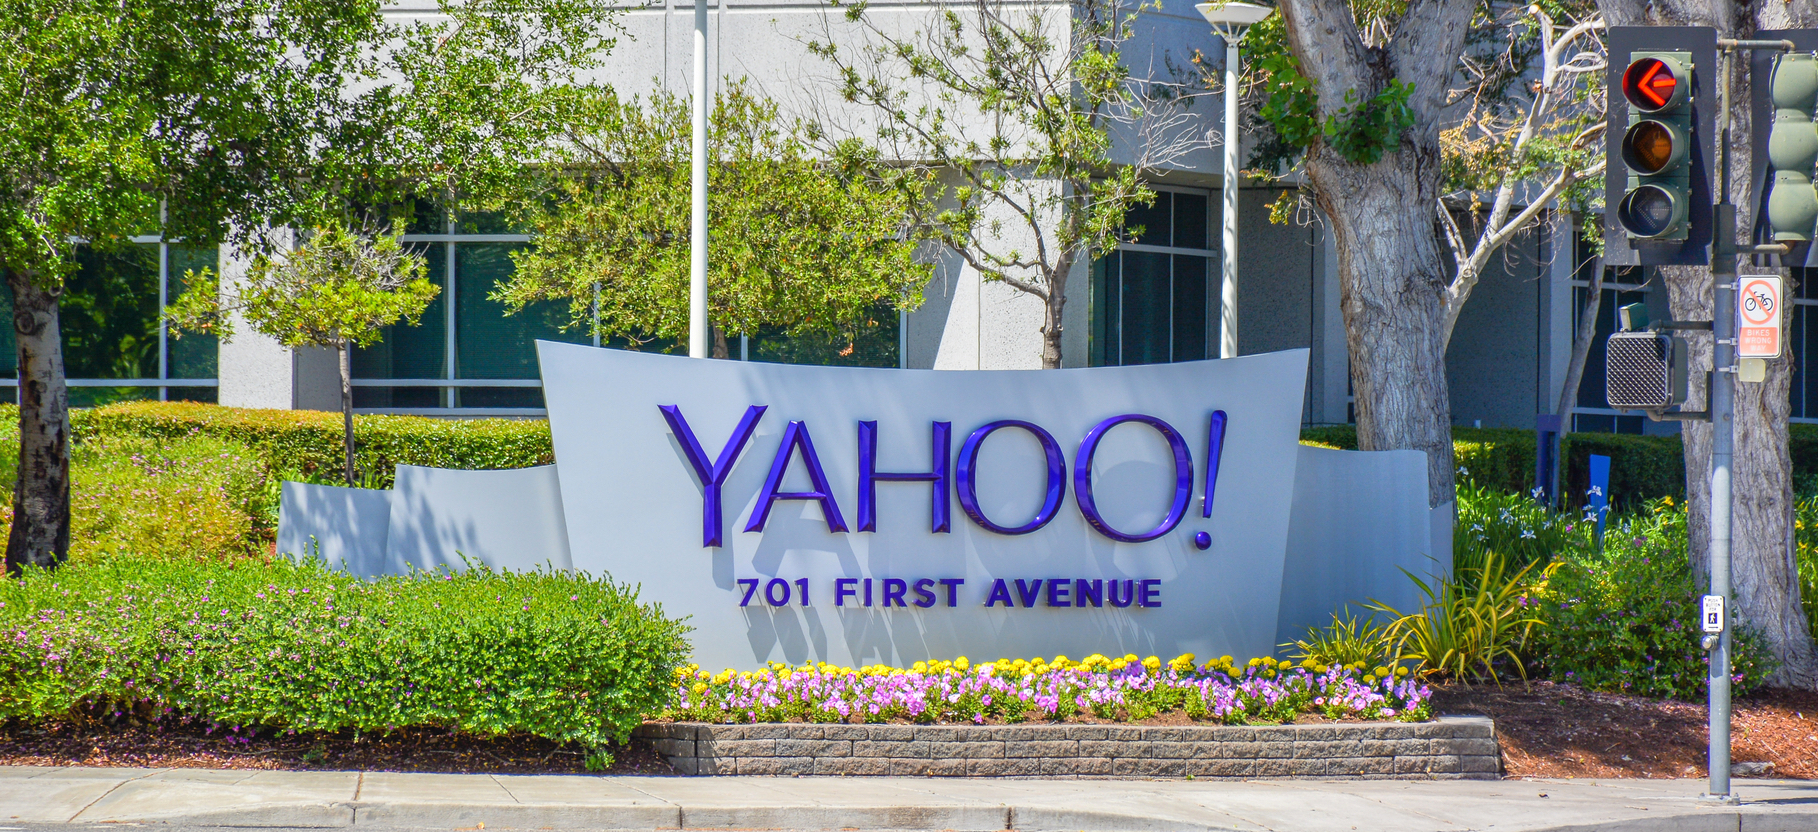 Who is the creator or sponsor for yahoo and the credentials?